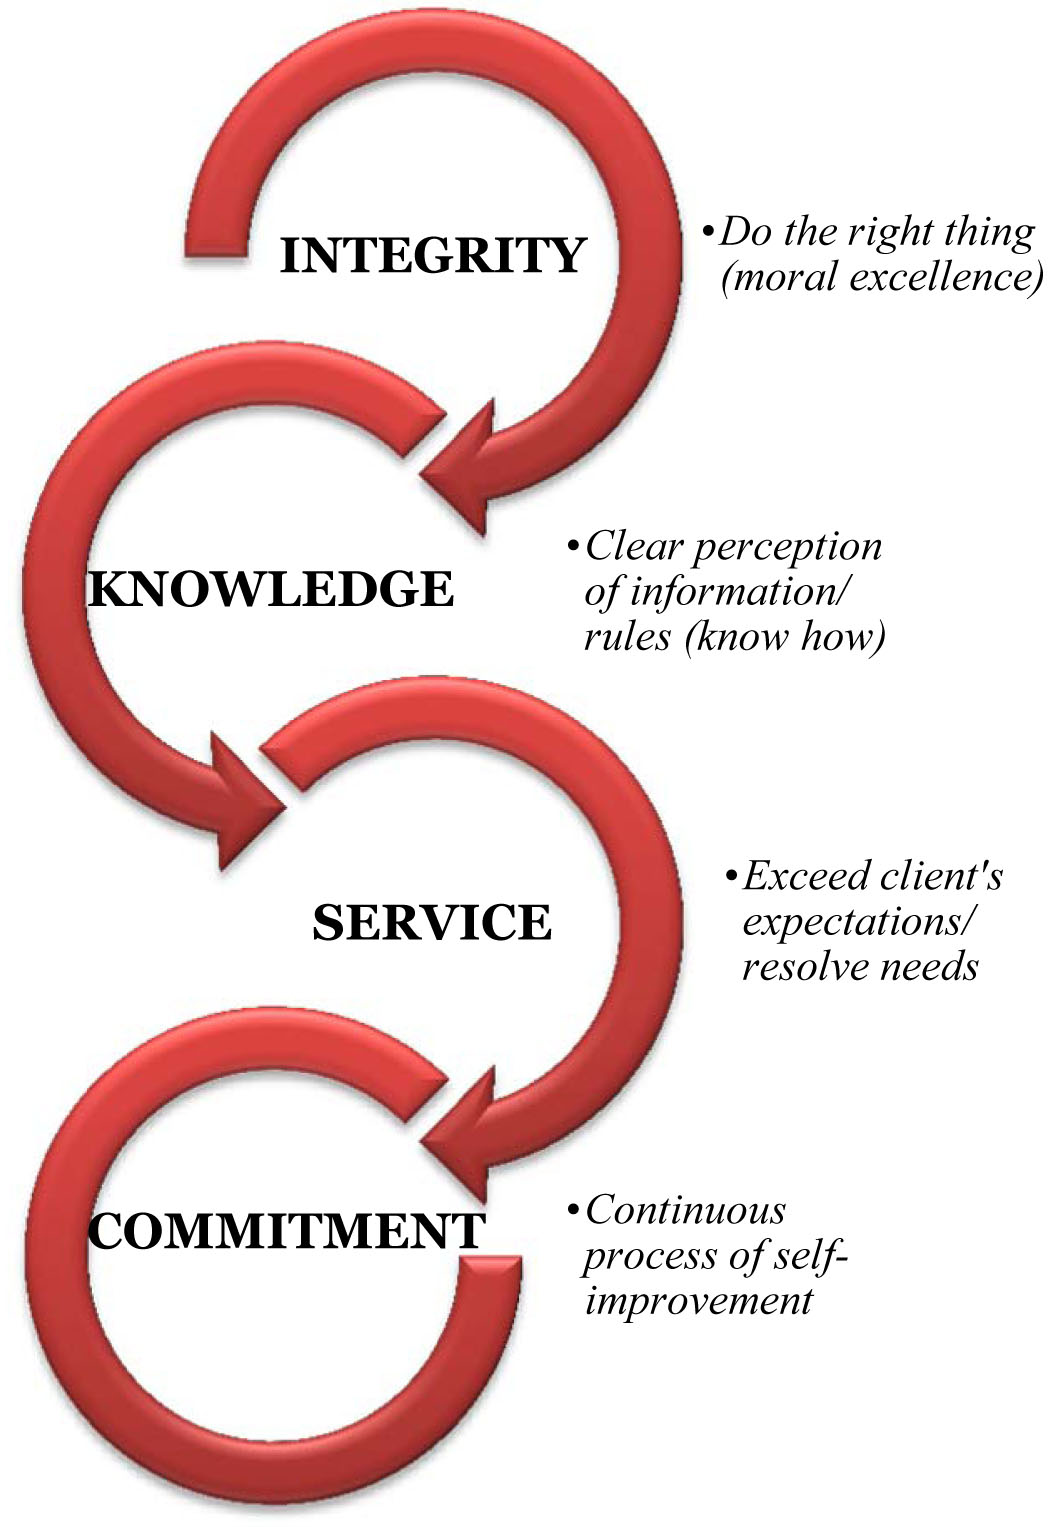 Integrity Knowledge Service Commitment Do the right thing moral excellence clear perception of information/rules know how exceed client's expectations/resolve needs continuous process of self-improvement